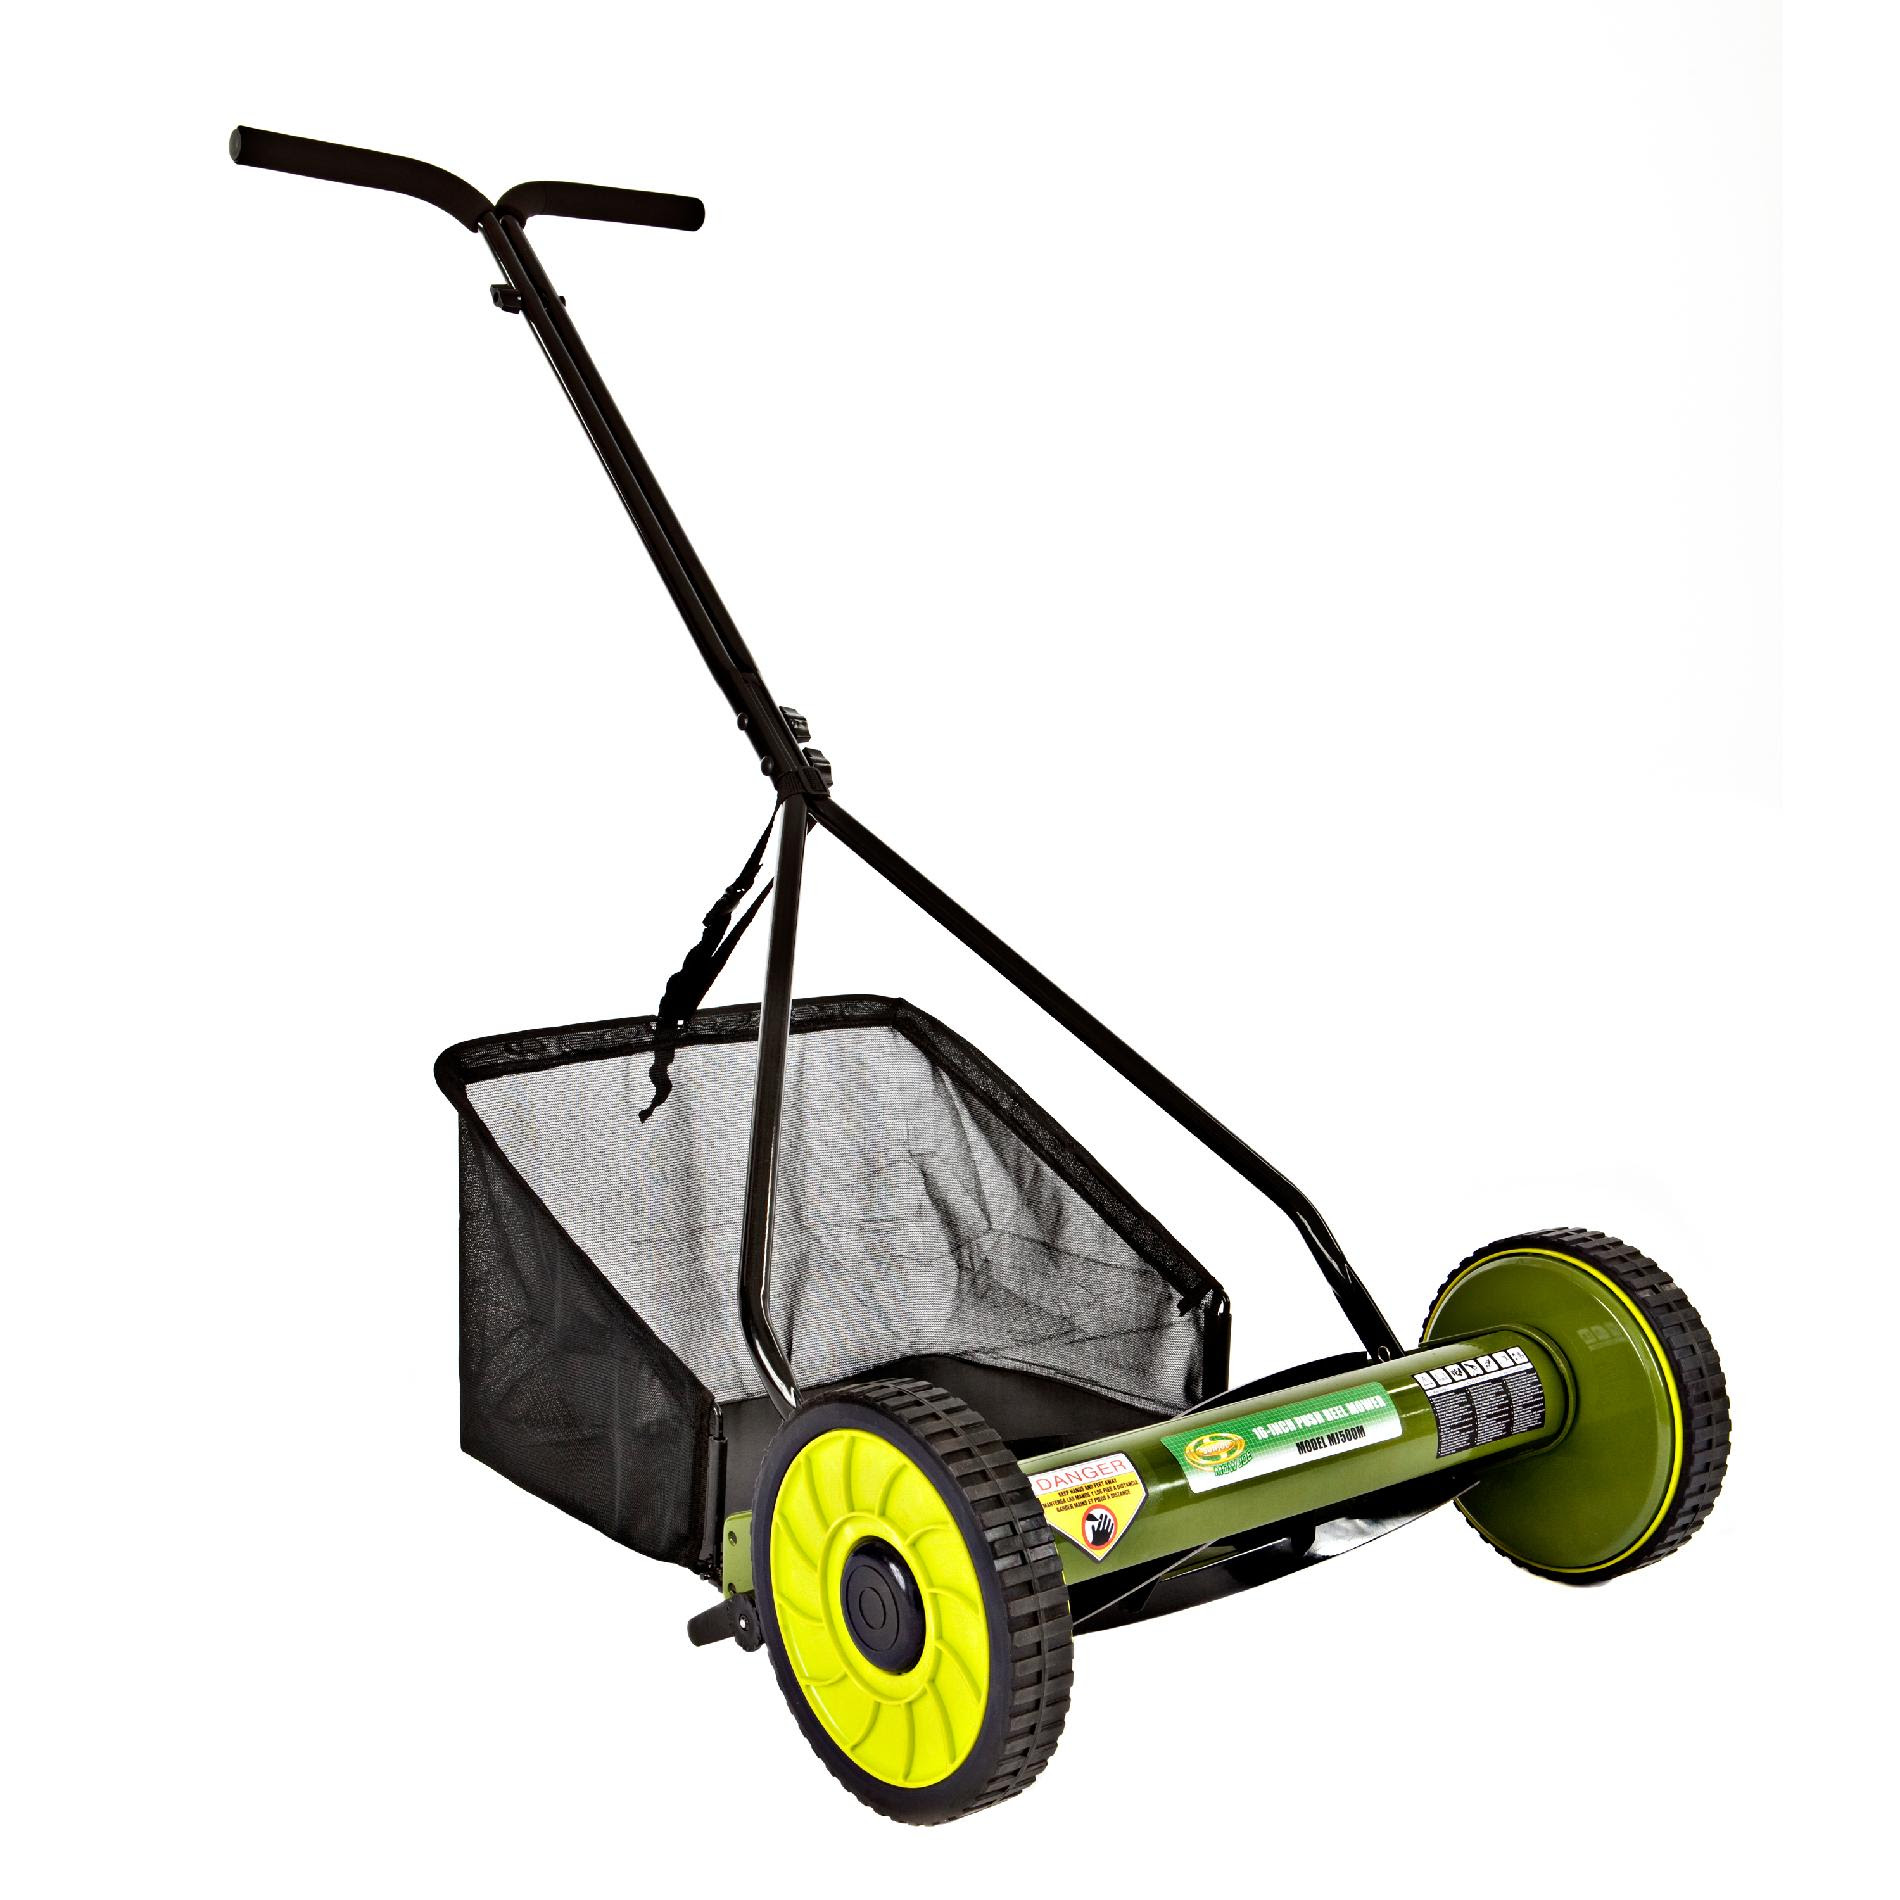 Sears lawn mower service coupon Furniture deals black friday